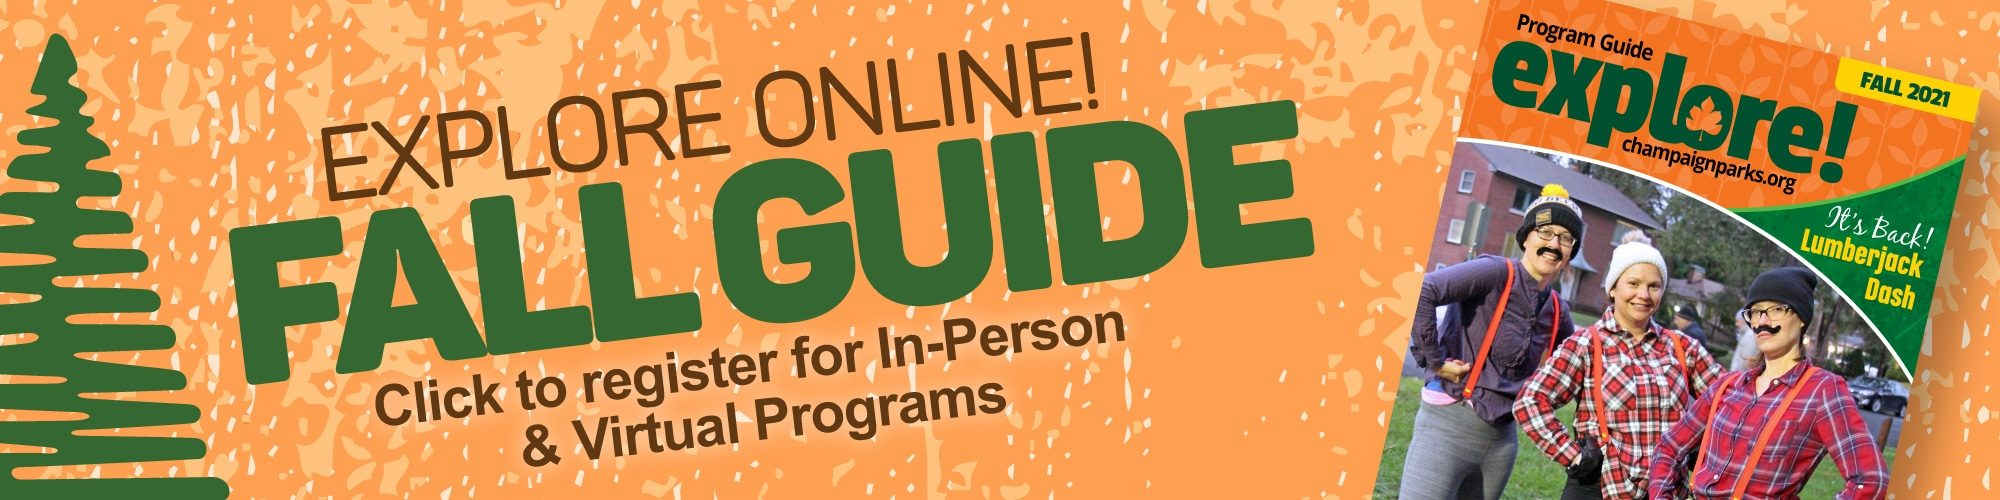 Explore online! Fall Guide. Click to register for In-Person and Virtual Programs